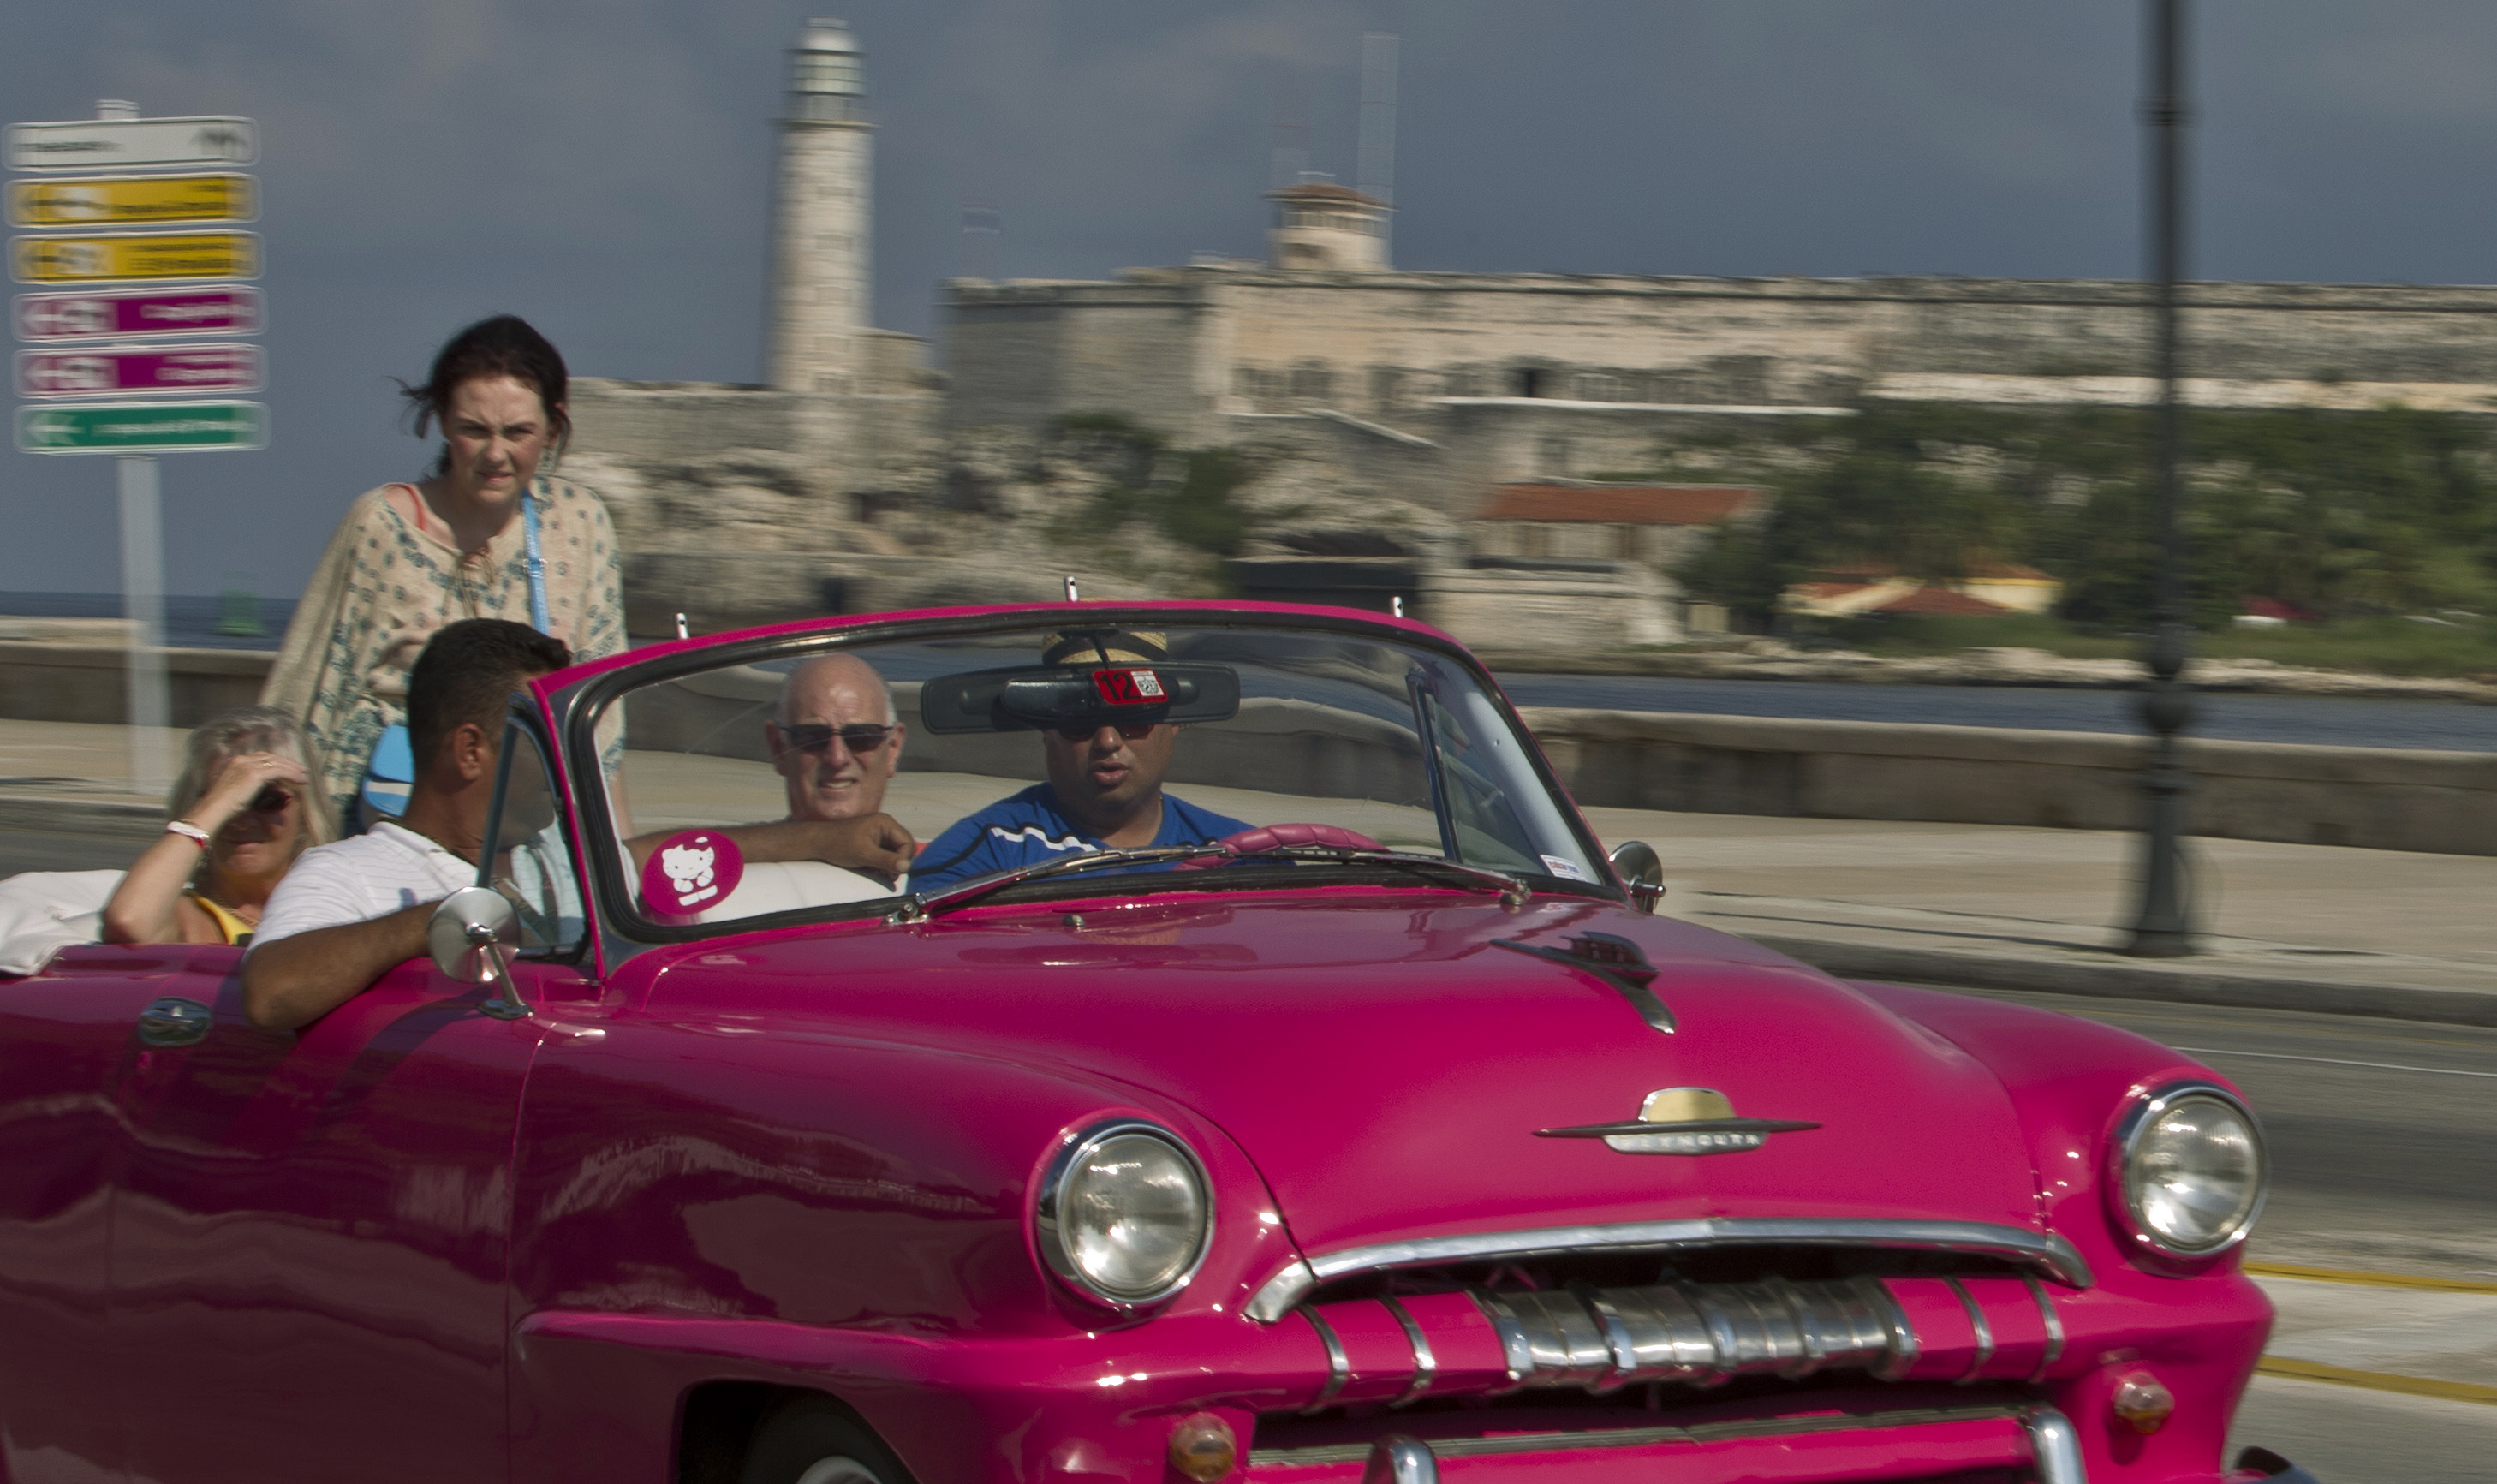 Havana cuba 39 s classic cars pictures cbs news for American classic automotive